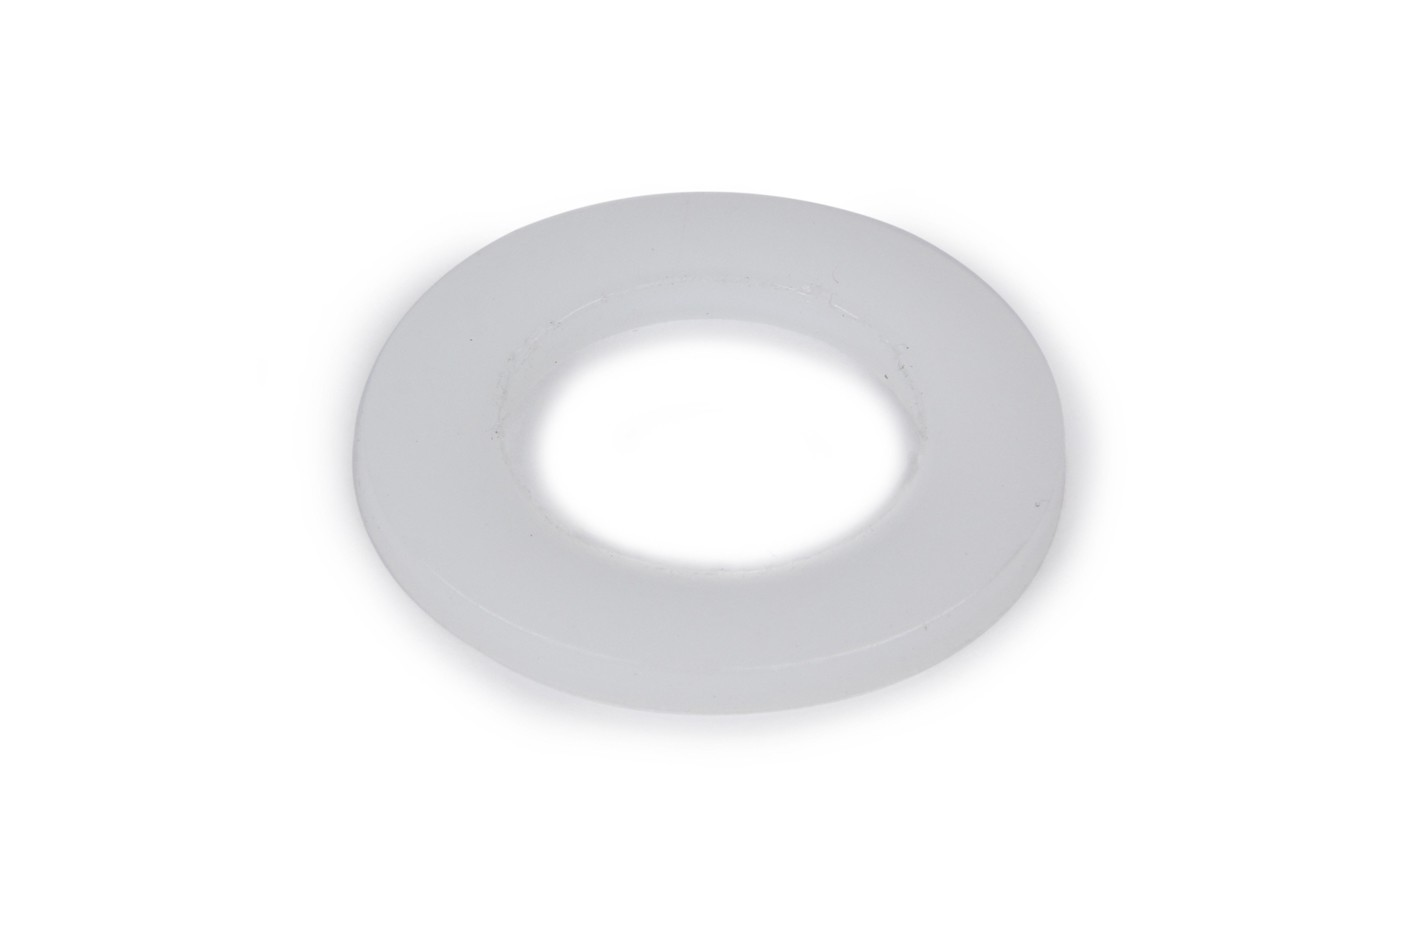 Jaz 850-508-04 Sealing Washer, 8 AN, 1-1/4 in OD, 3/4 in ID, 0.125 in Thick, PTFE, Each